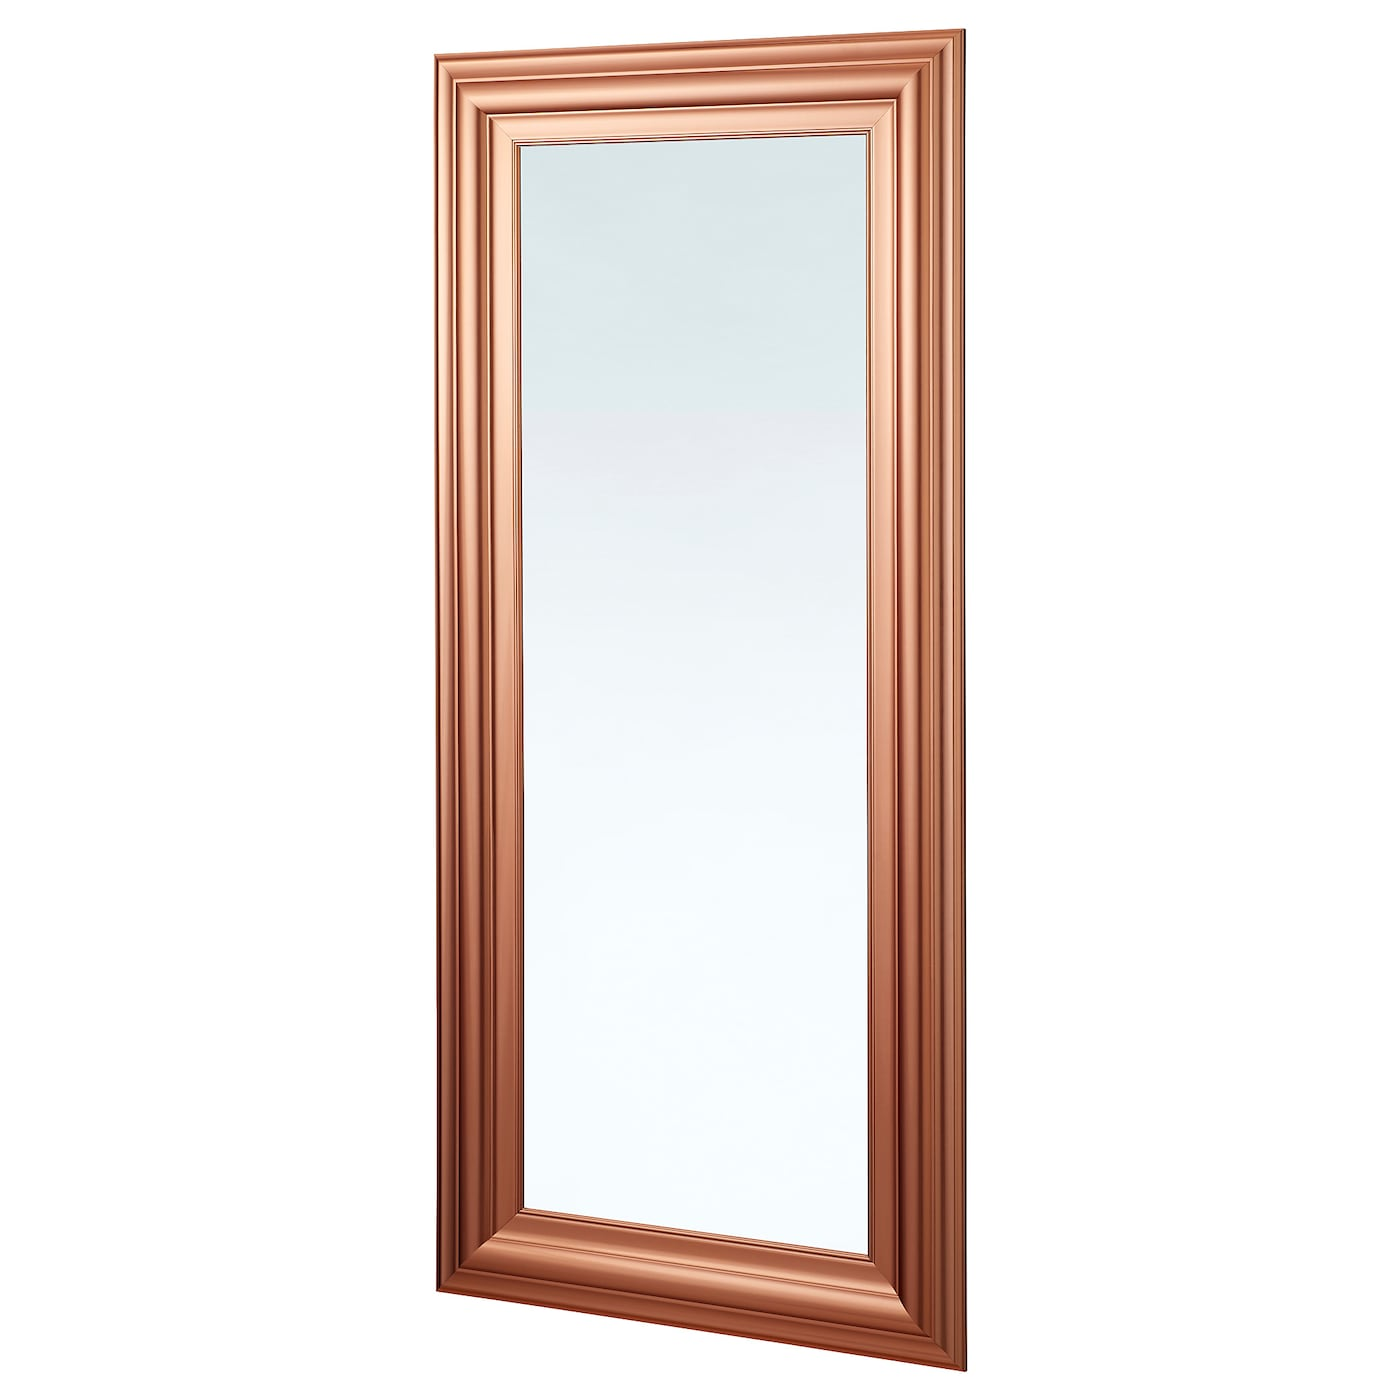 IKEA LEVANGER mirror Full-length mirror. Can be hung horizontally or vertically.